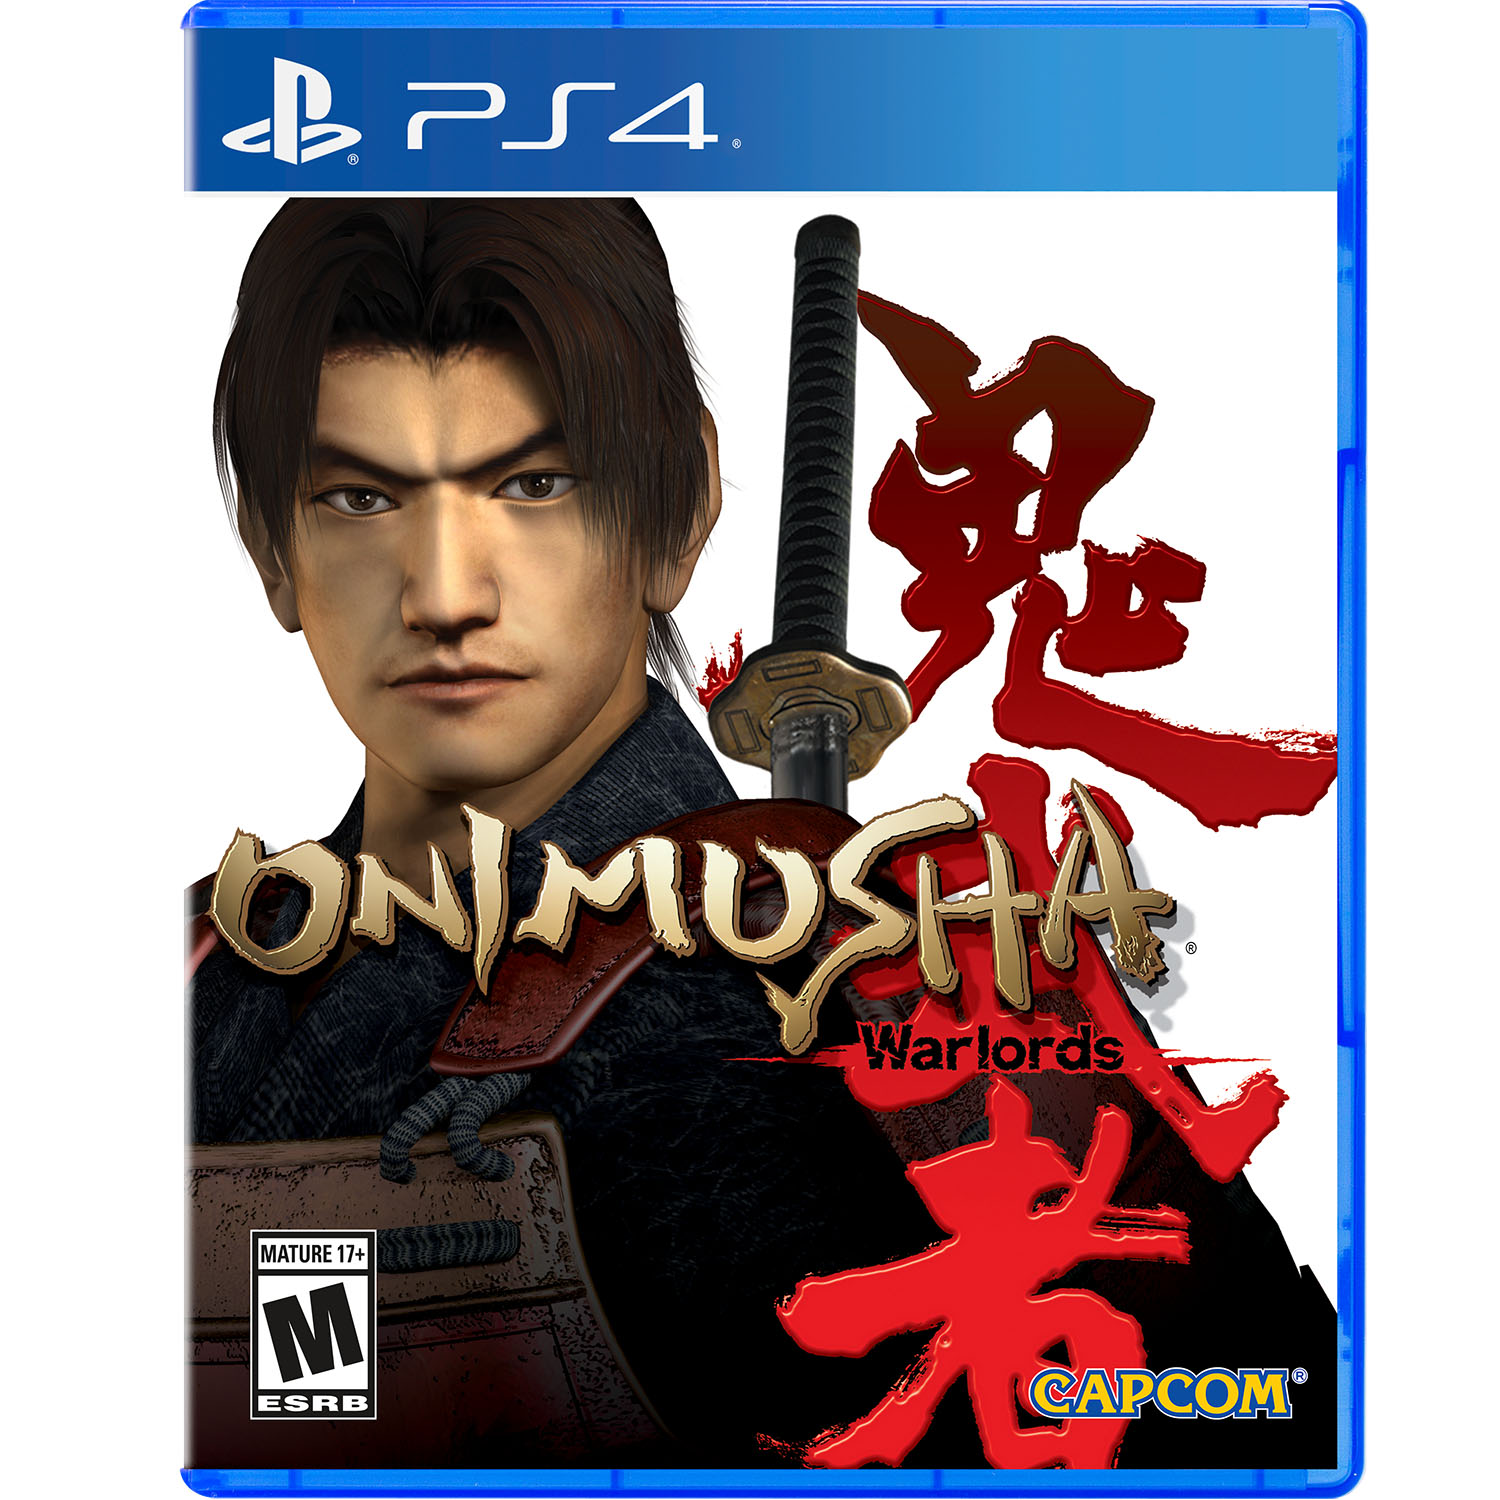 Onimusha: Warlords, Capcom, PlayStation 4, 013388560530